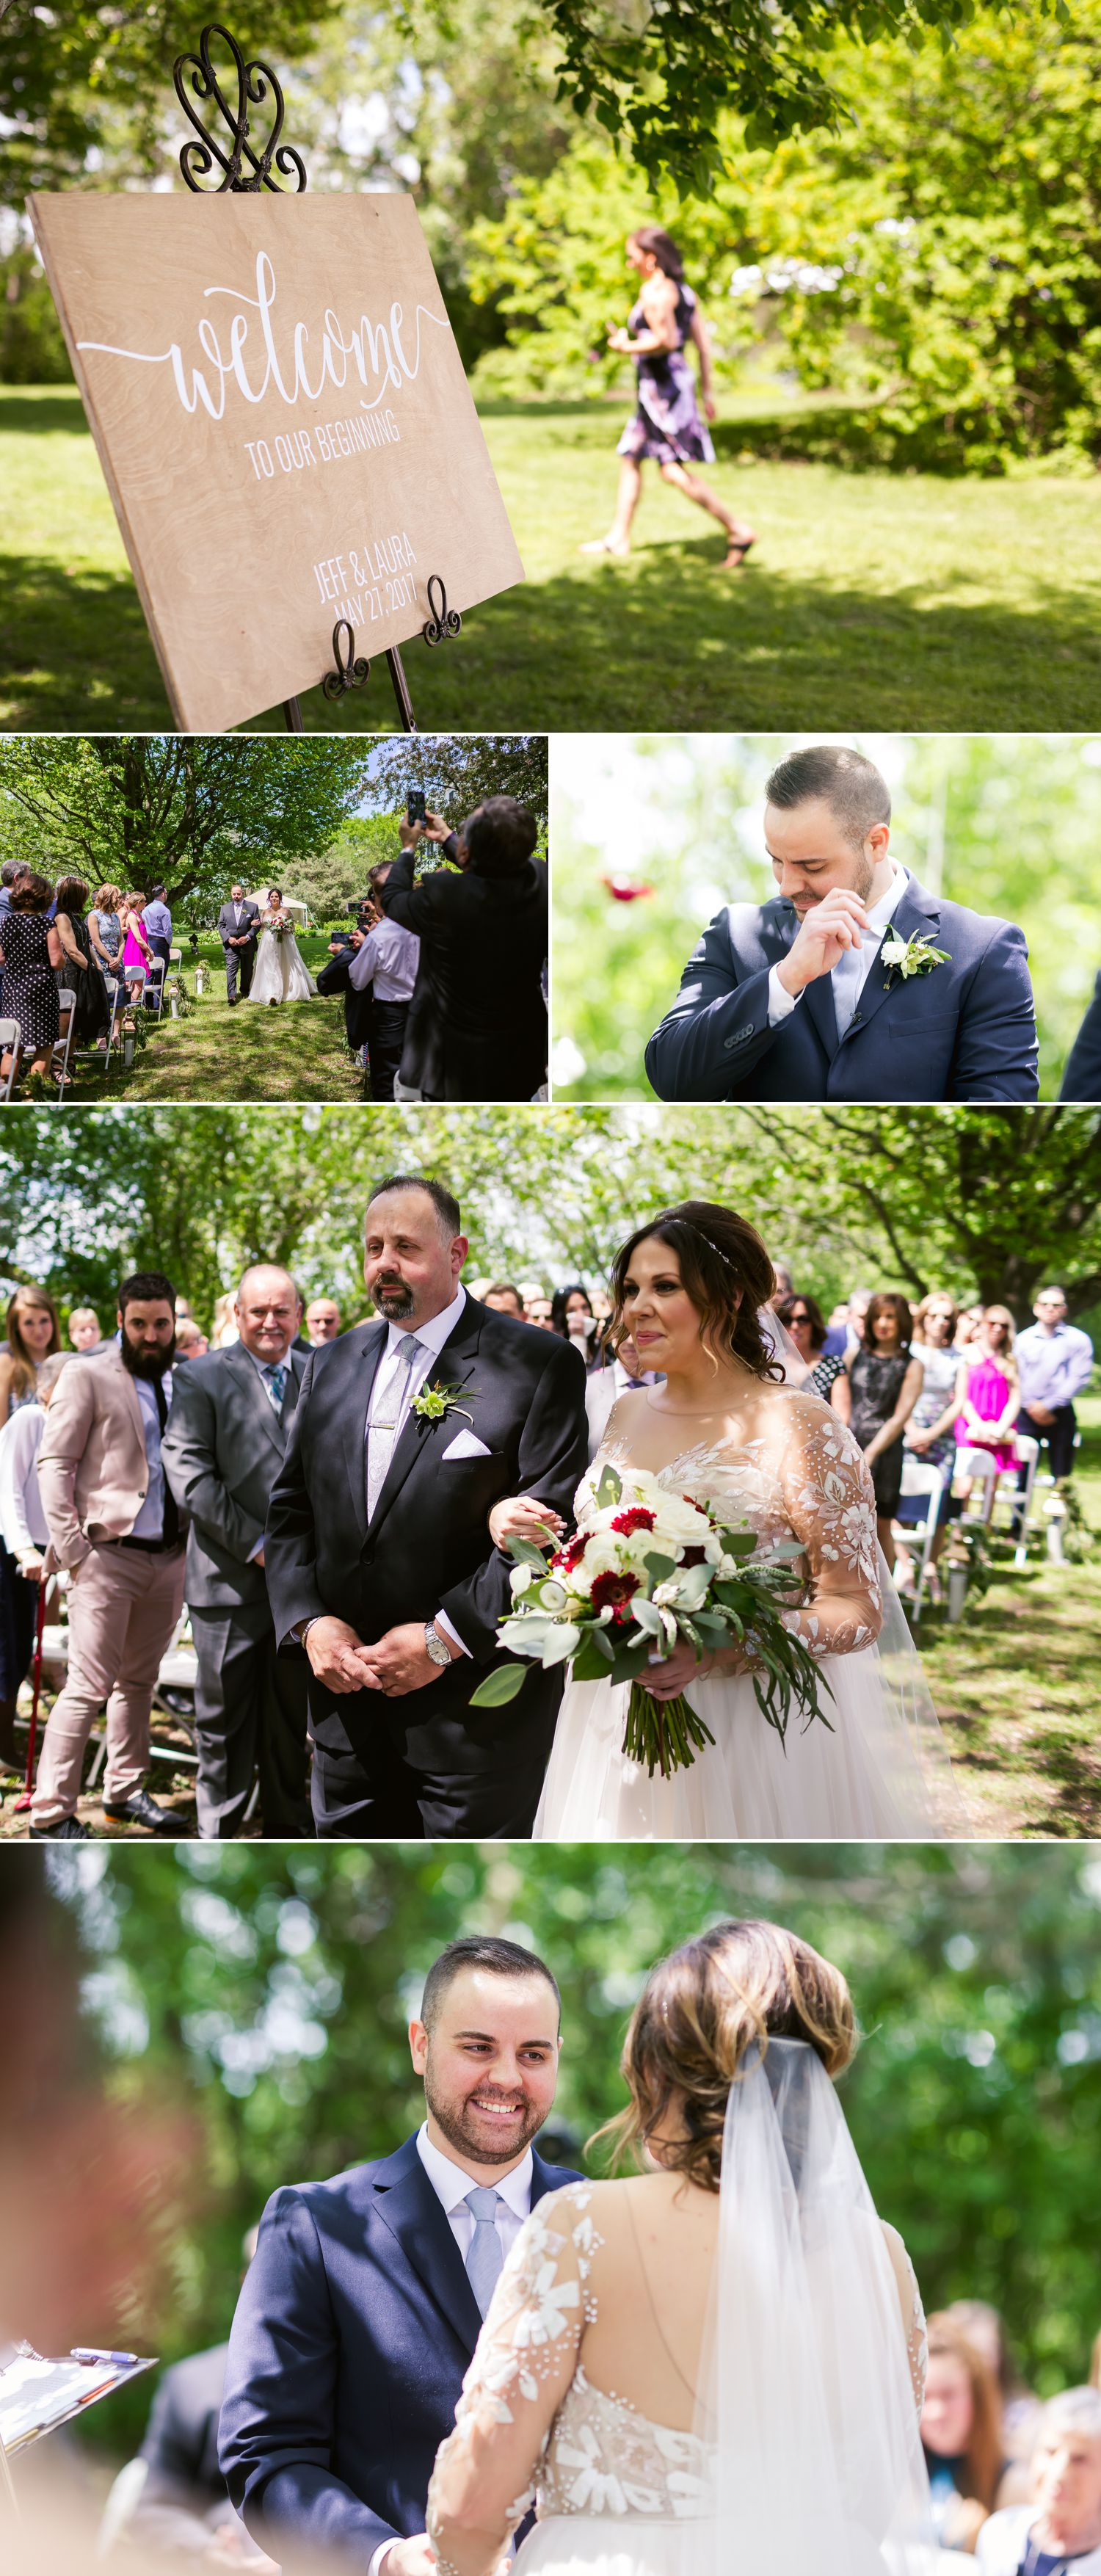 A spring wedding ceremony outside at Billings Estate in Ottawa